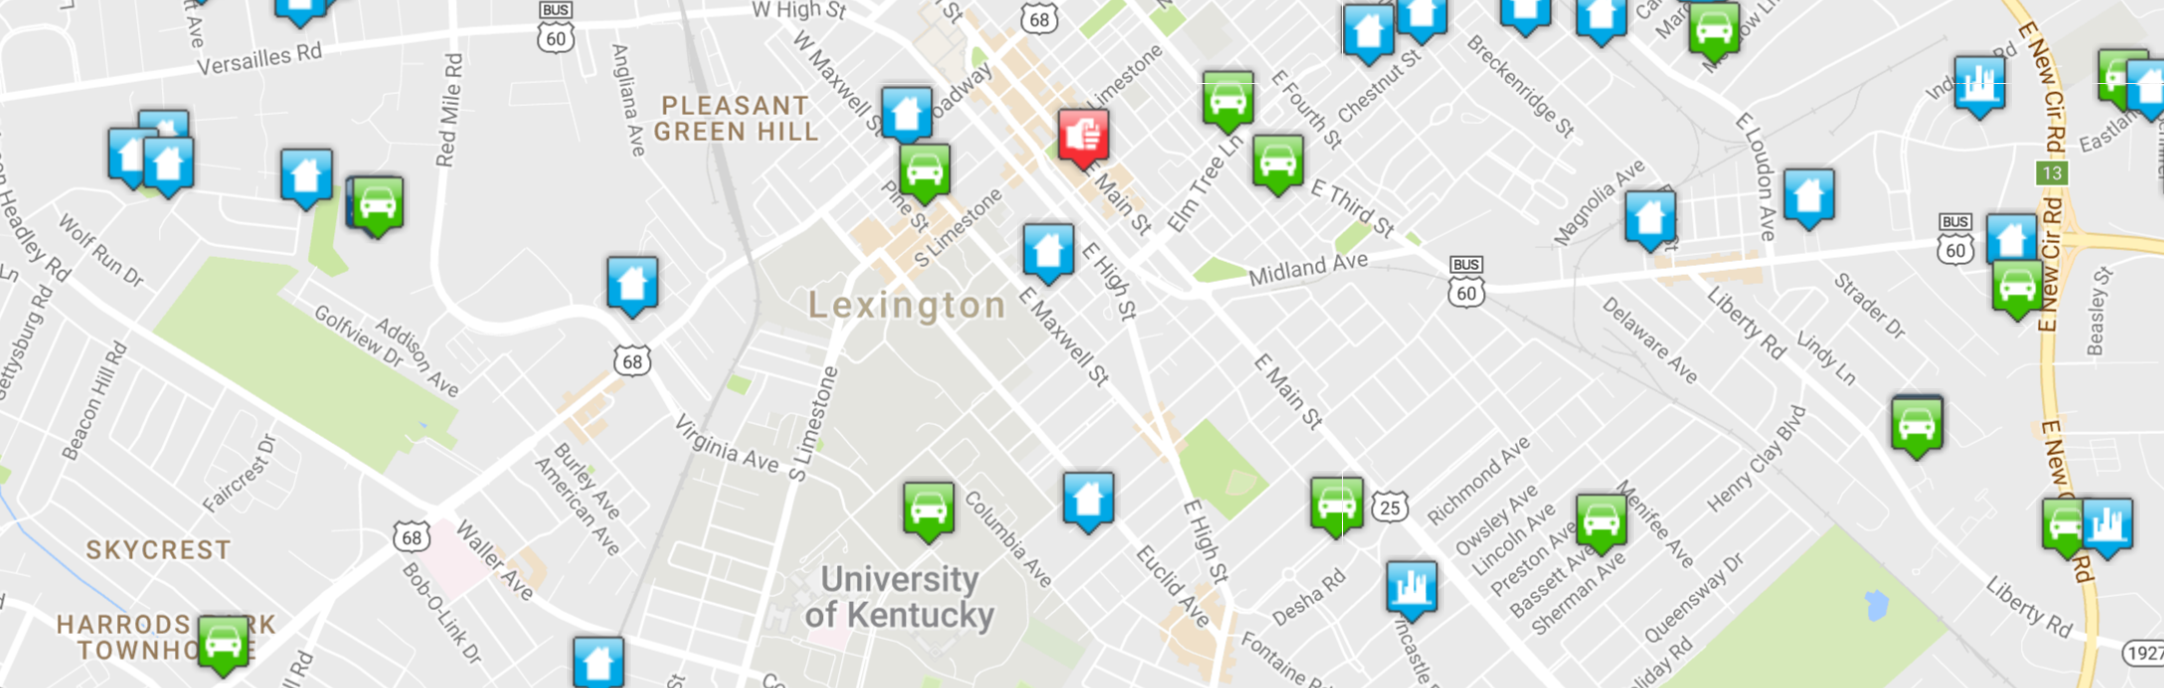 Community Crime Map | City of Lexington on san bernardino crime map, columbus crime map, dubuque crime map, champaign crime map, nevada crime map, tallahassee crime map, muncie crime map, atlanta metro crime map, henderson crime map, spokane crime map, binghamton crime map, alabama crime map, kentucky crime map, eugene crime map, salt lake city crime map, iowa crime map, saint paul crime map, south bend crime map, topeka crime map, ann arbor crime map,